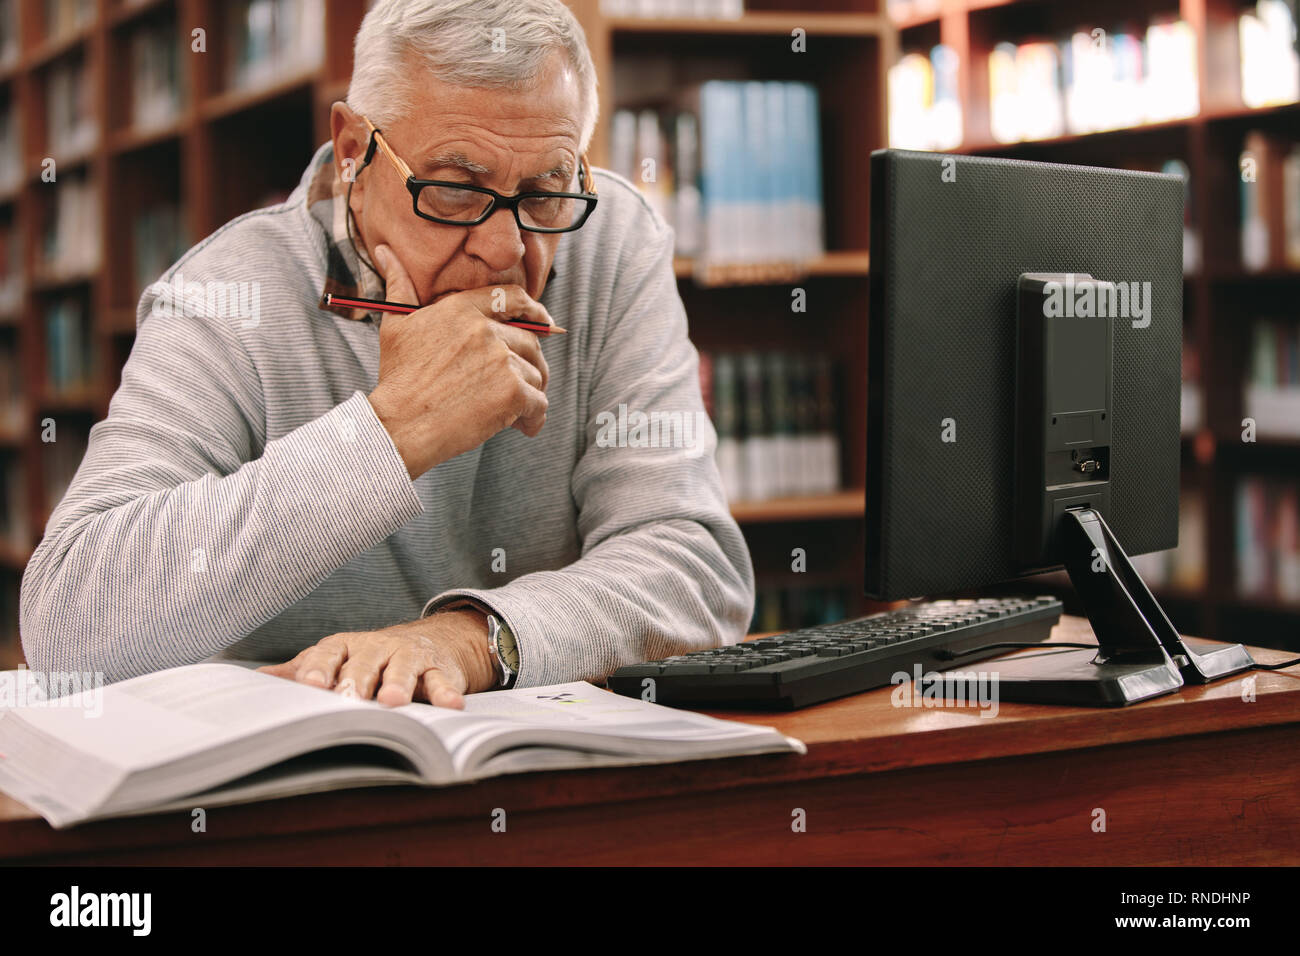 Senior man sitting in a classroom and reading a book. Elderly man sitting in classroom and learning with a book and computer on the table. Stock Photo